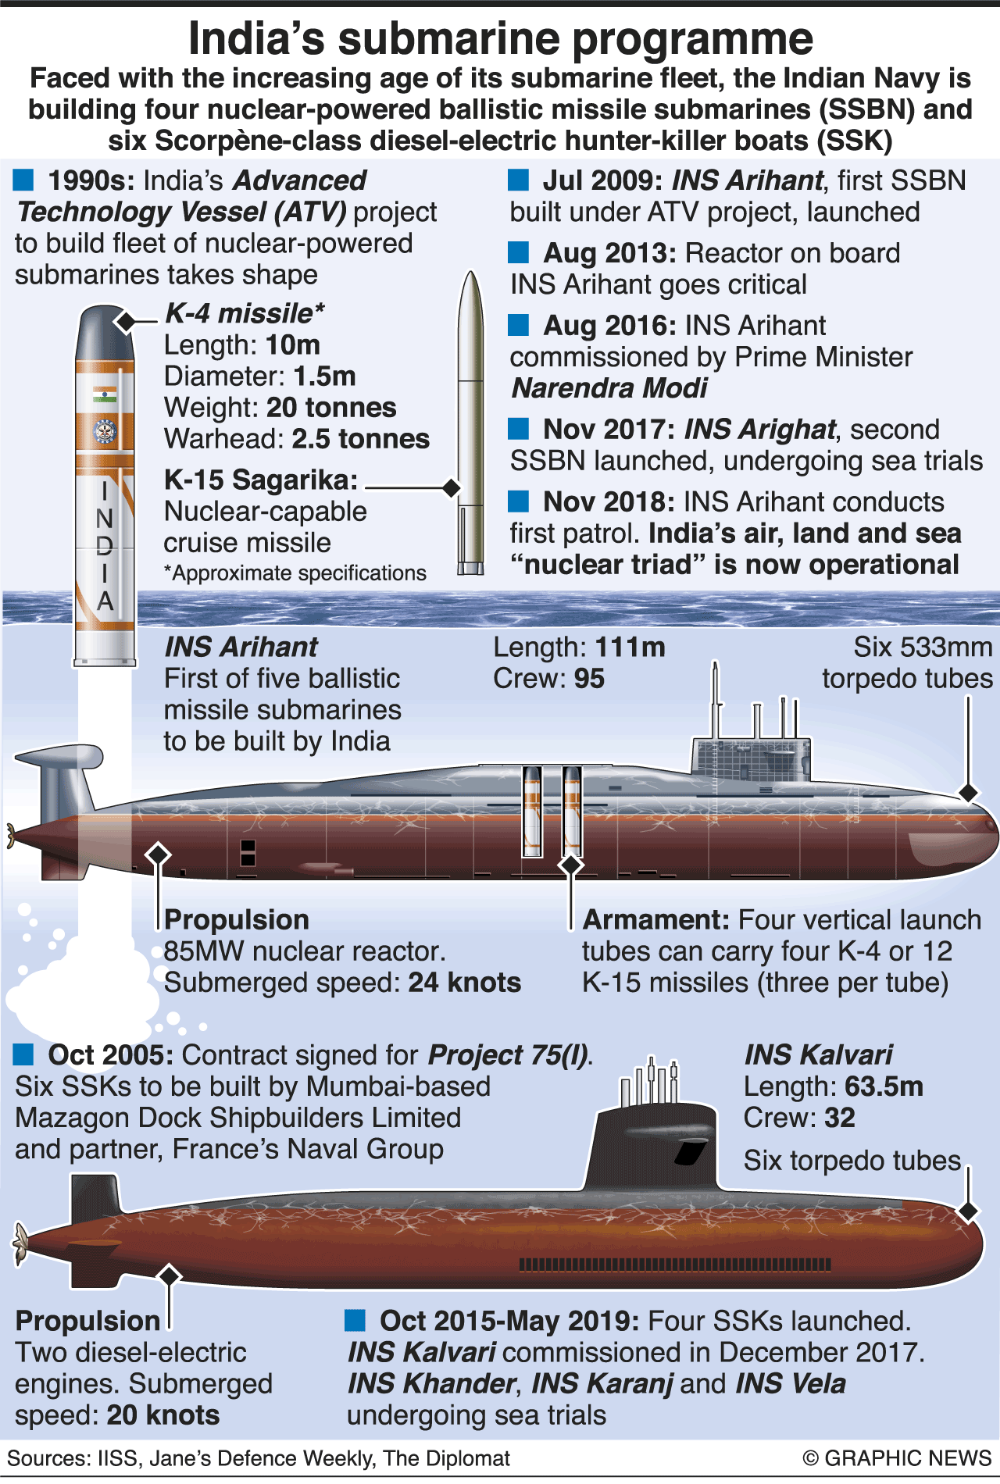 MILITARY_ India's submarine programme infographic.png